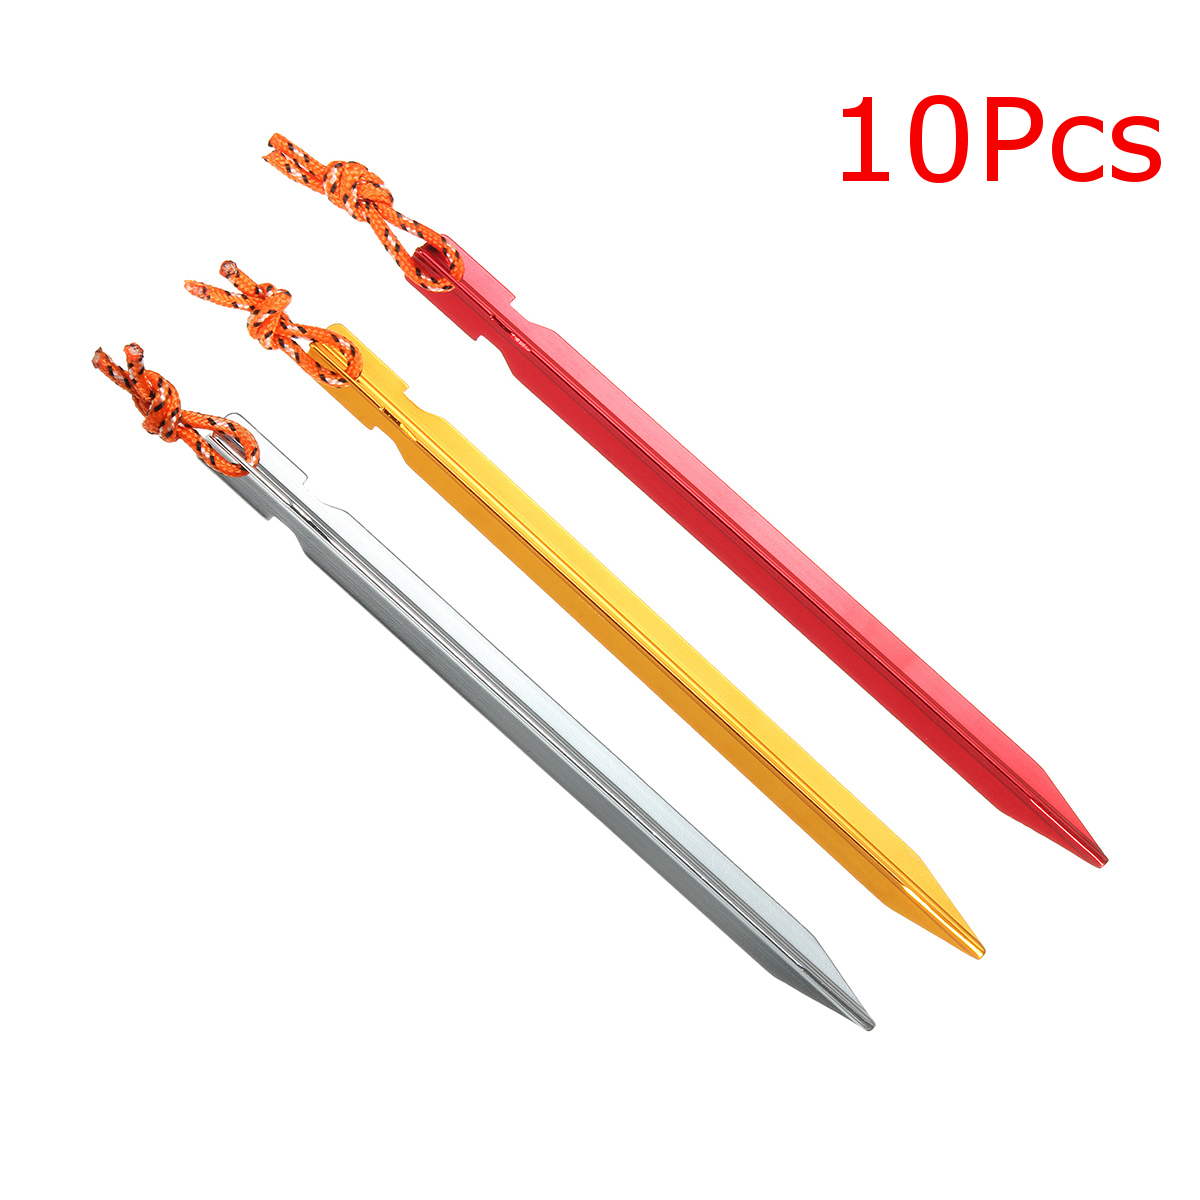 10Pcs 18cm Aluminum Alloy Camping Trip Tent Peg Nail Stakes With Strap